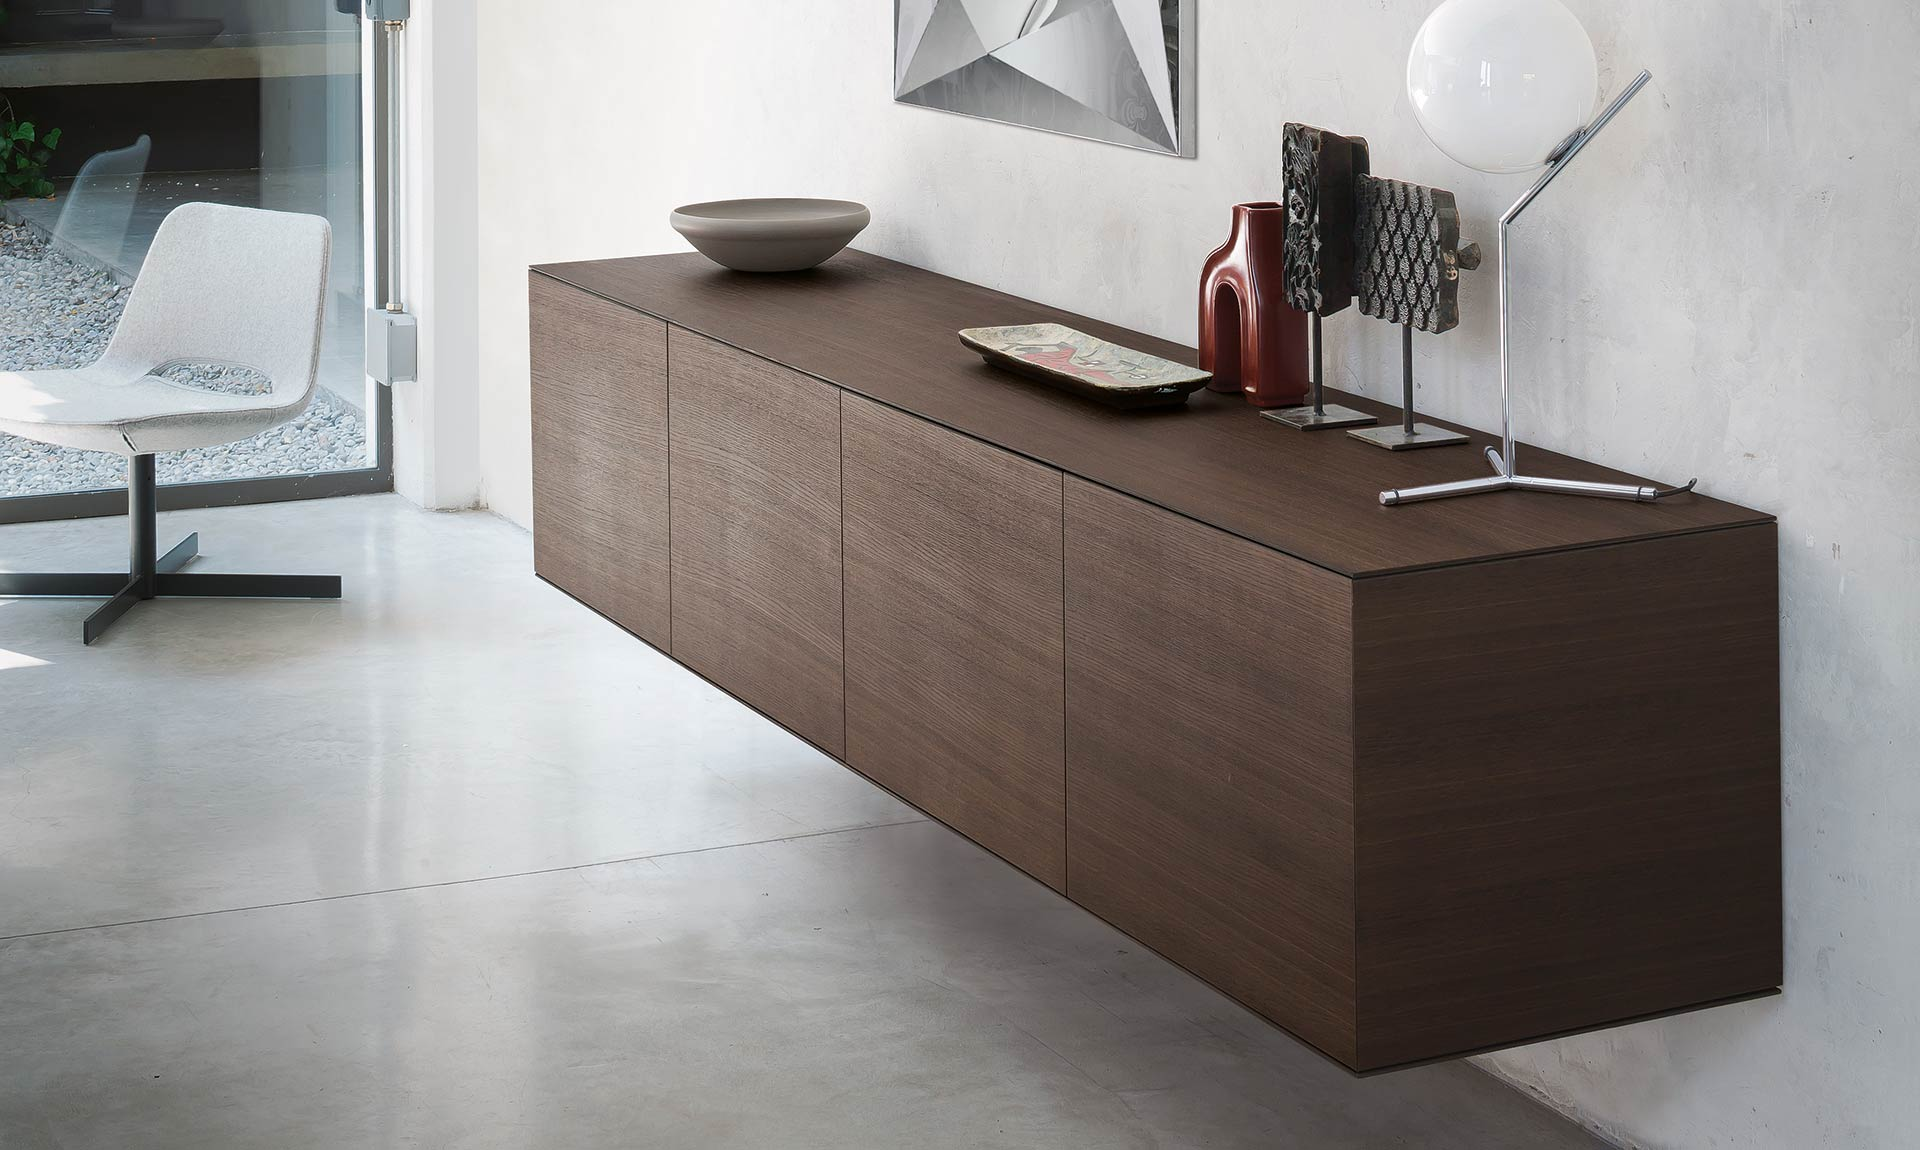 sideboard-wood-linea-riflessi